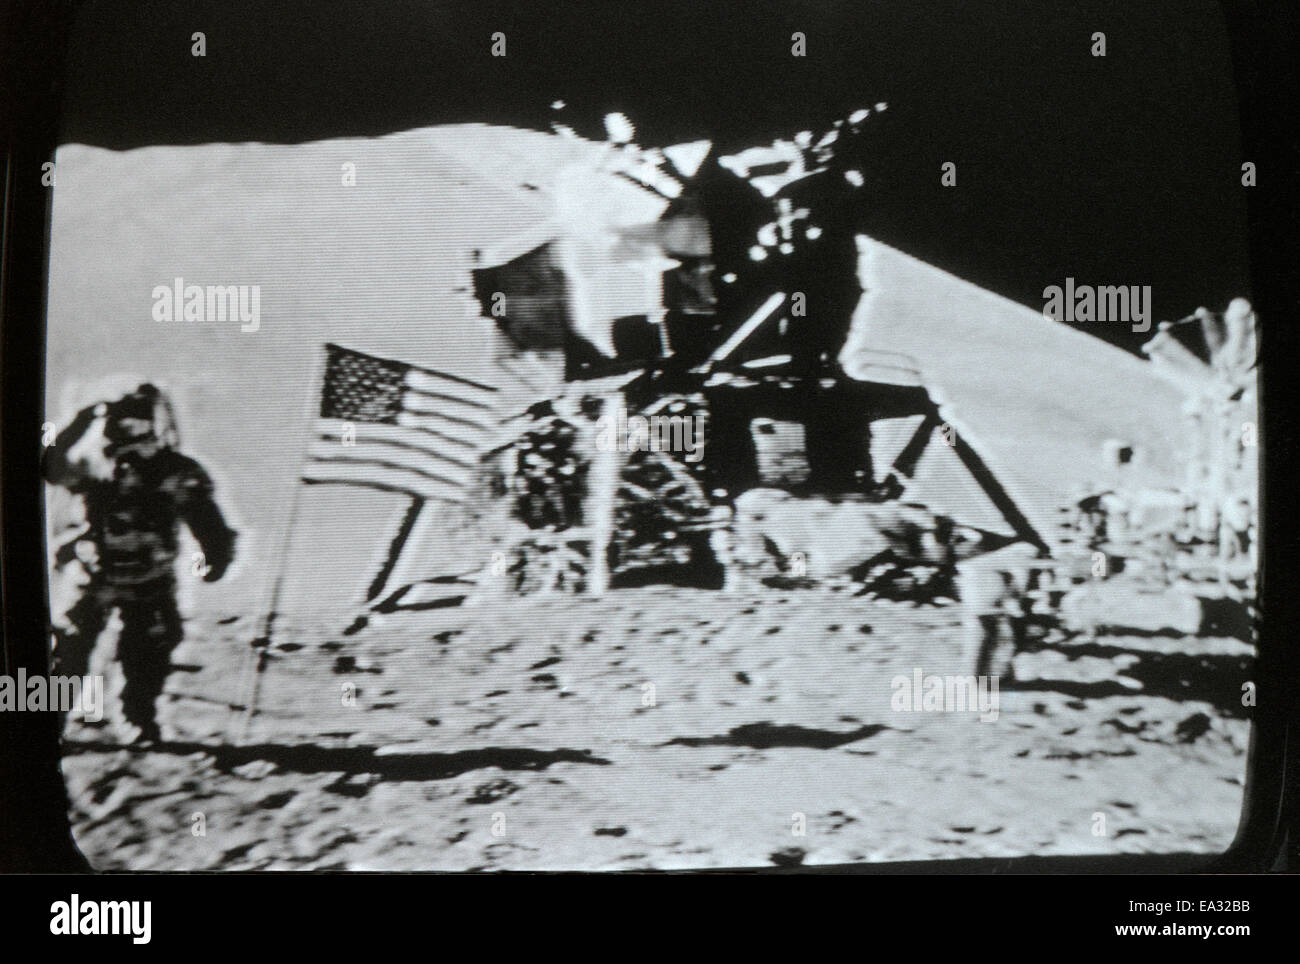 Moon Landing Lunar Module Eagle Flag And Astronaut 20 July 1969 Photographed In Actual Time